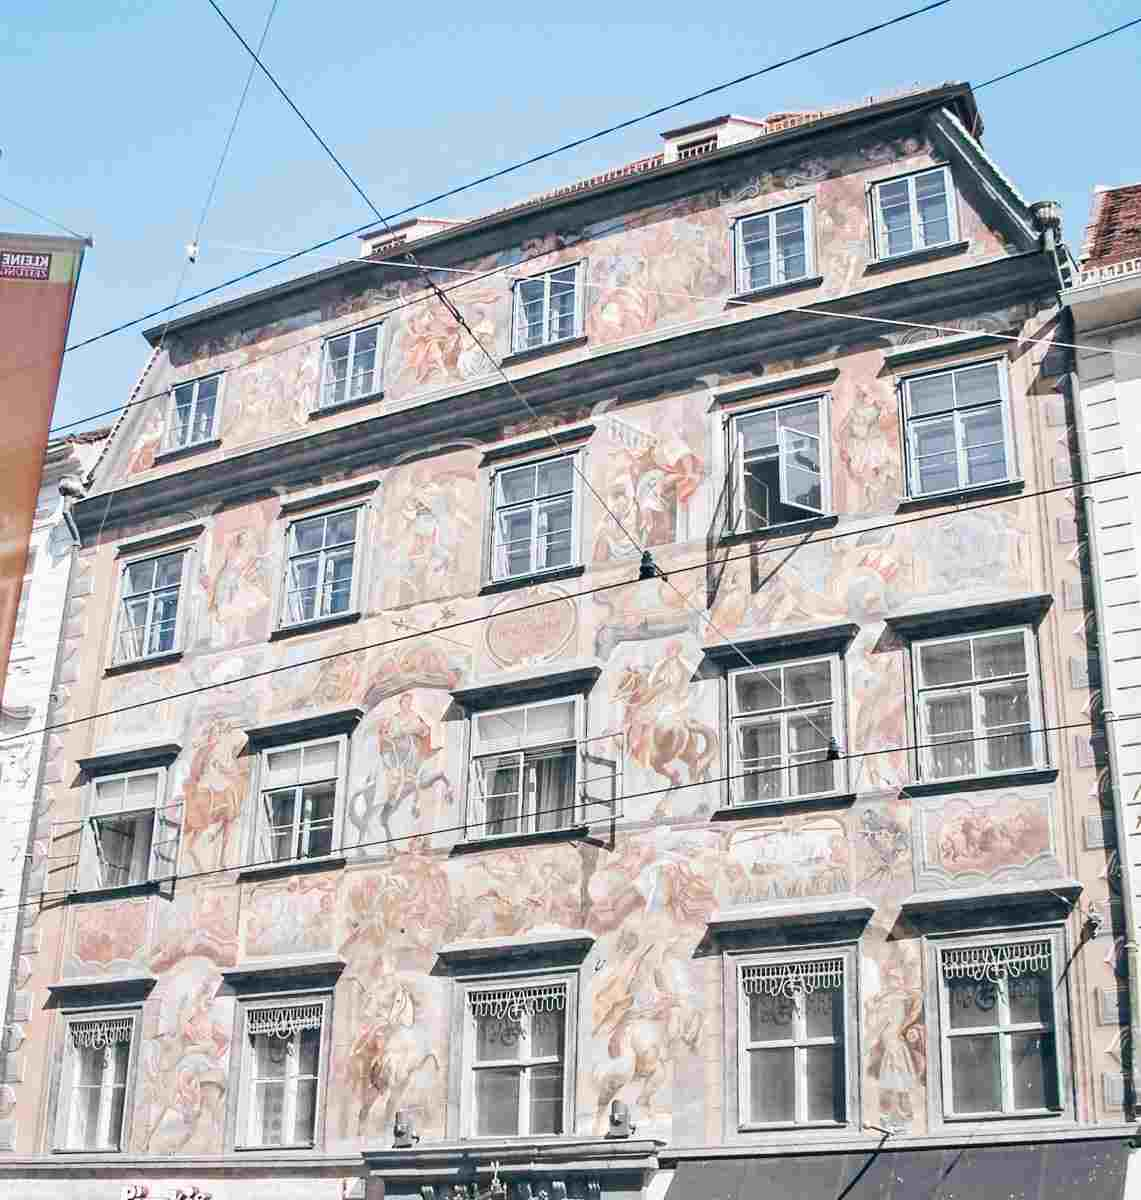 Gray Architecture: Colorful frescoes on the façade of the Painted  House